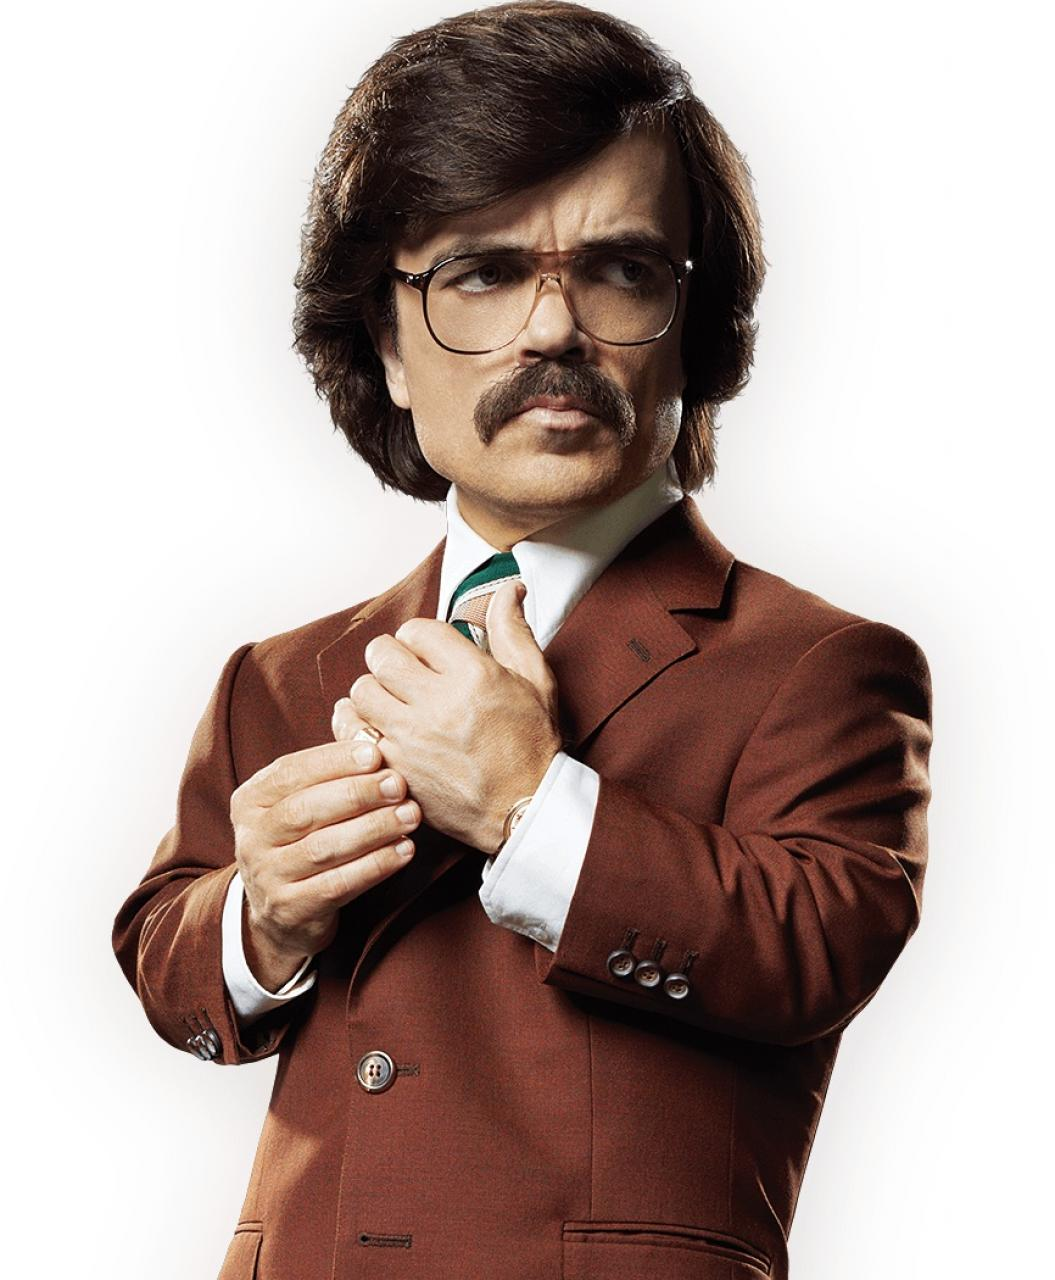 xmen days of future past character photo peter dinklage